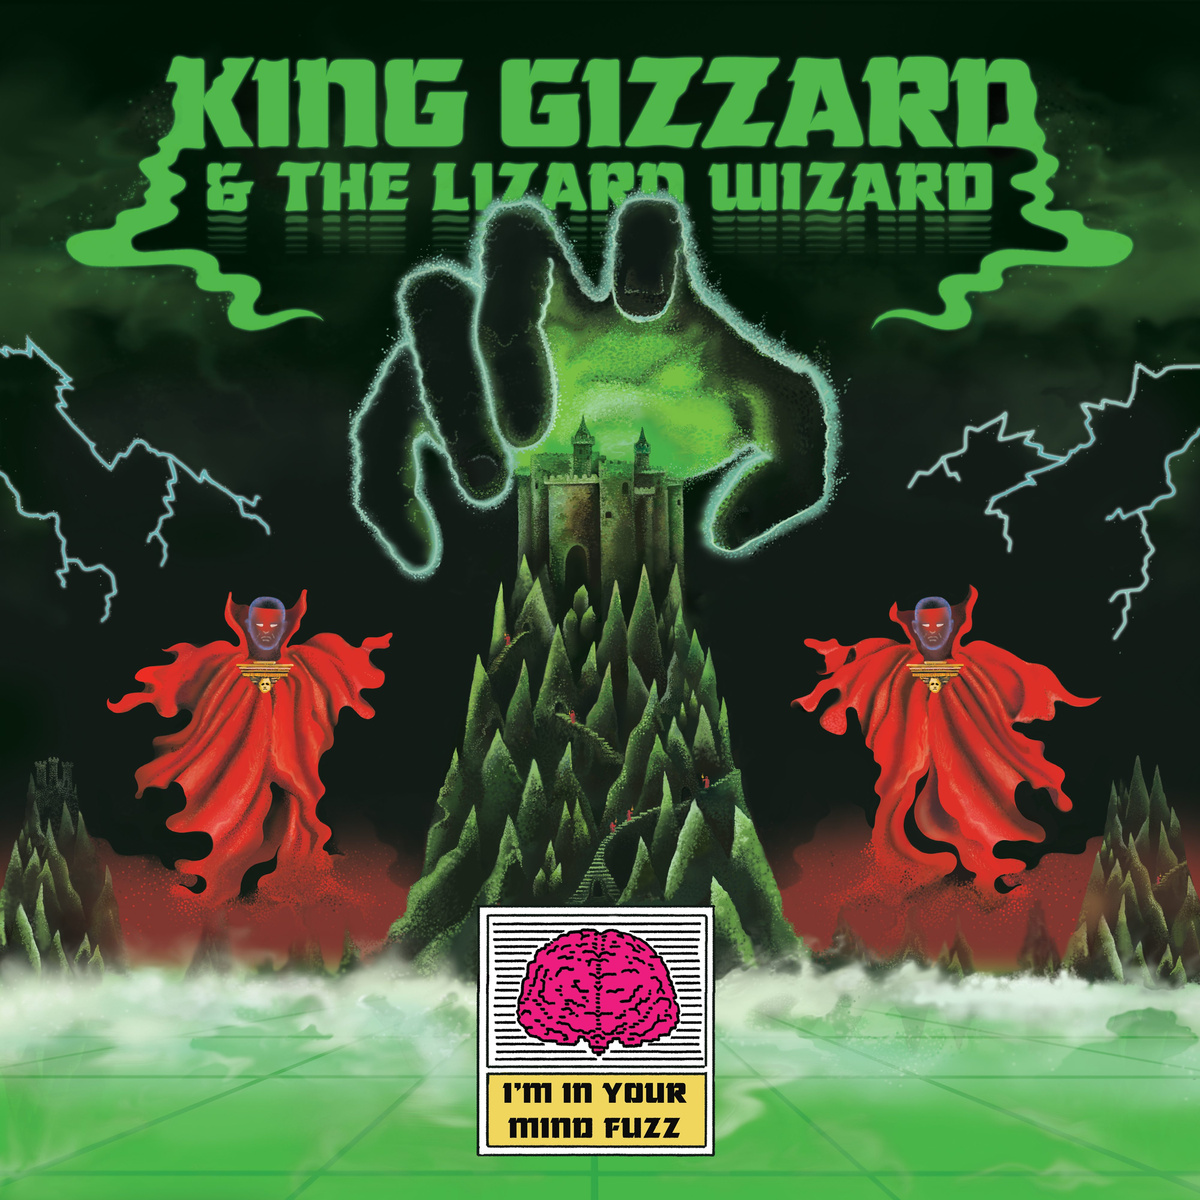 King Gizzard & The Lizard Wizard -  I'm In Your Mind Fuzz.